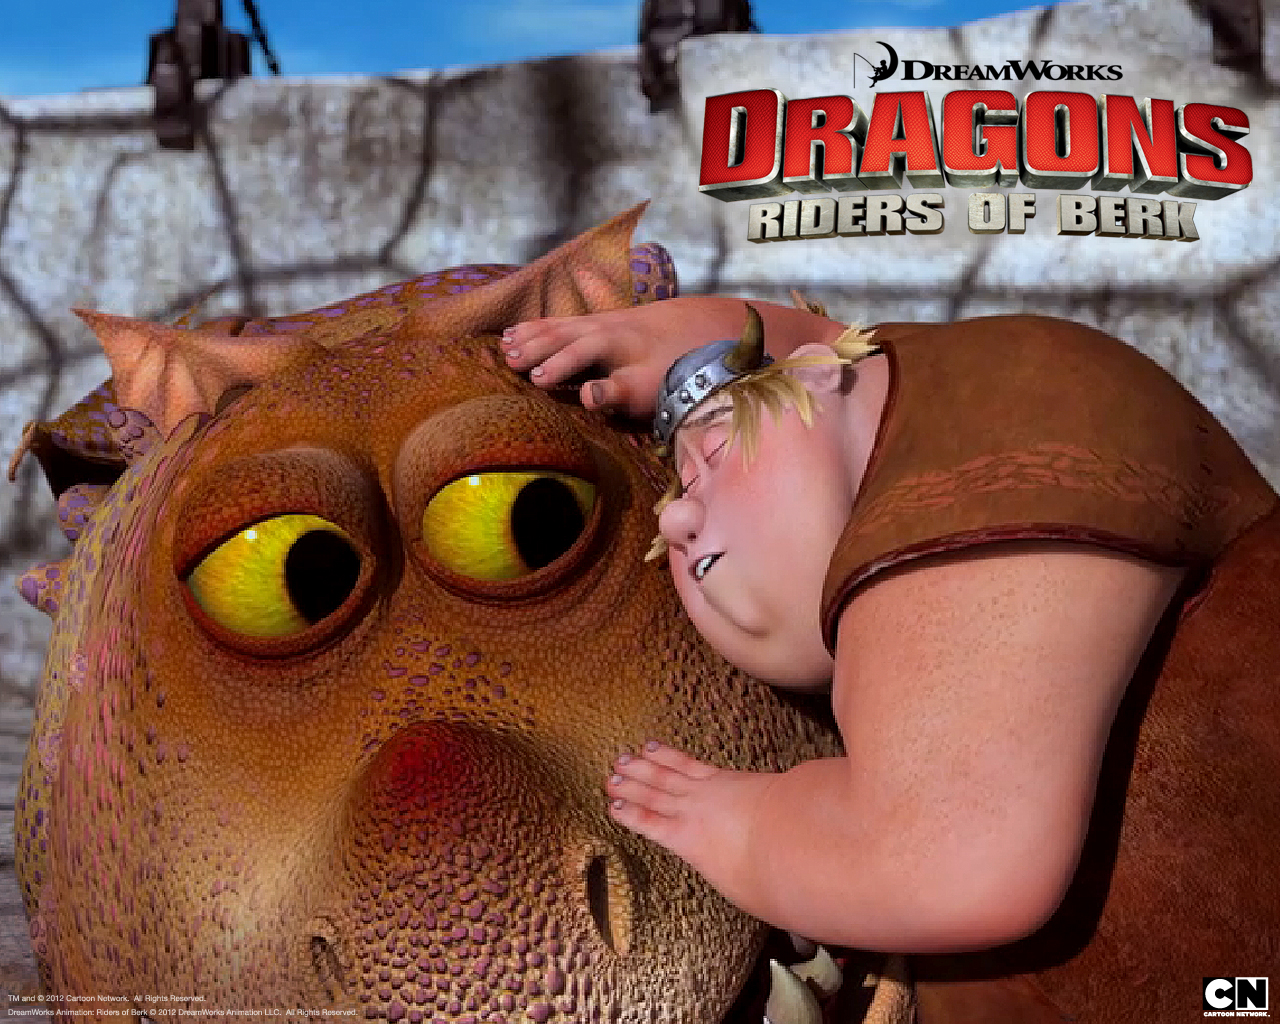 Fishlegs Riding Meatlug The Gronckle Dragon From Dreamworks Dragons: Riders  Of Berk How To Train